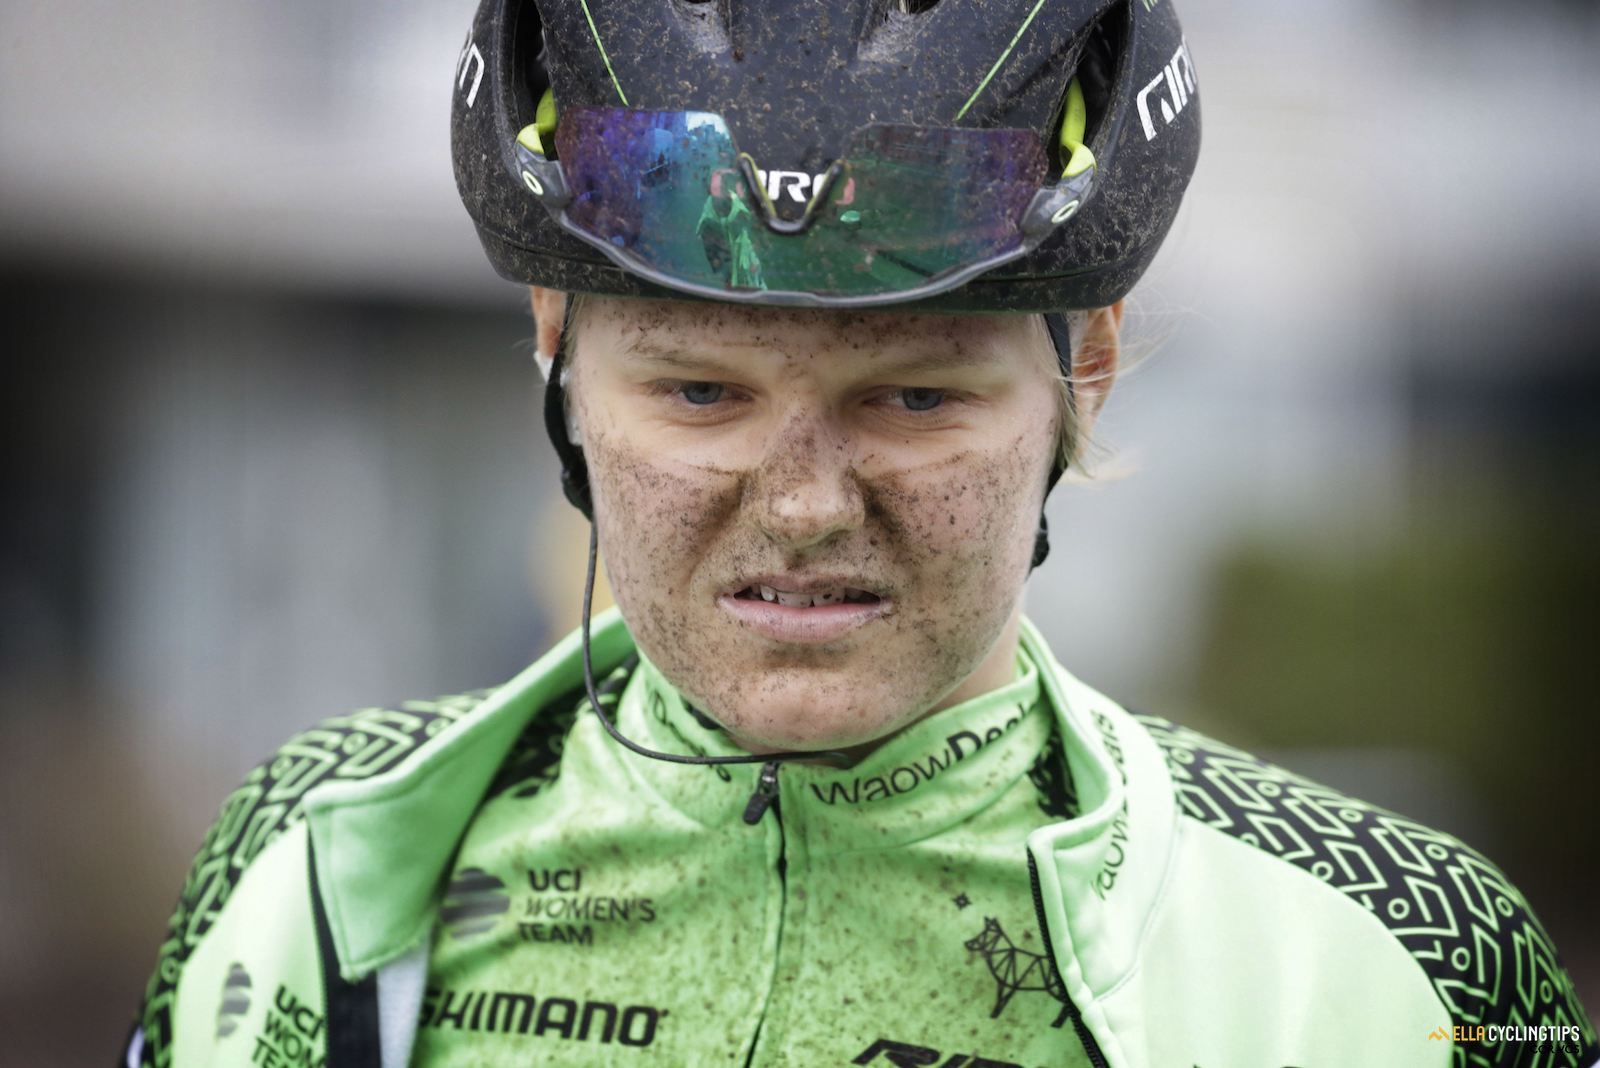 Dirty faces of the 2018 Ronde van Drenthe.